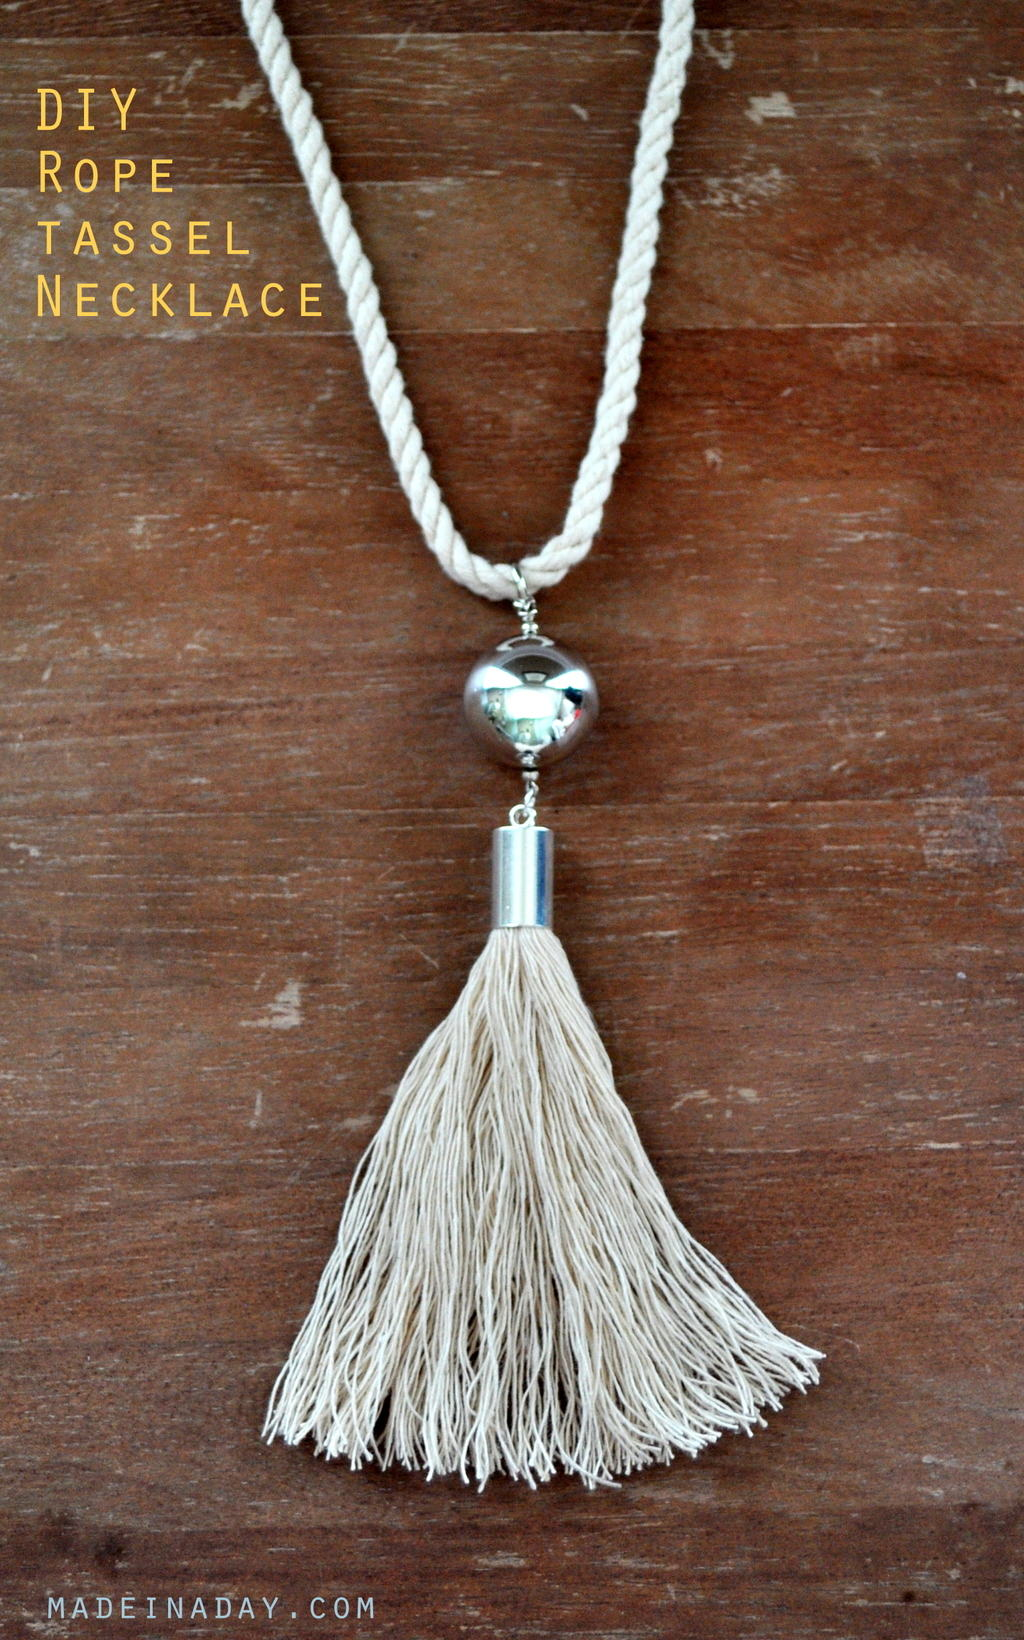 DIY Rope Tassel Necklace